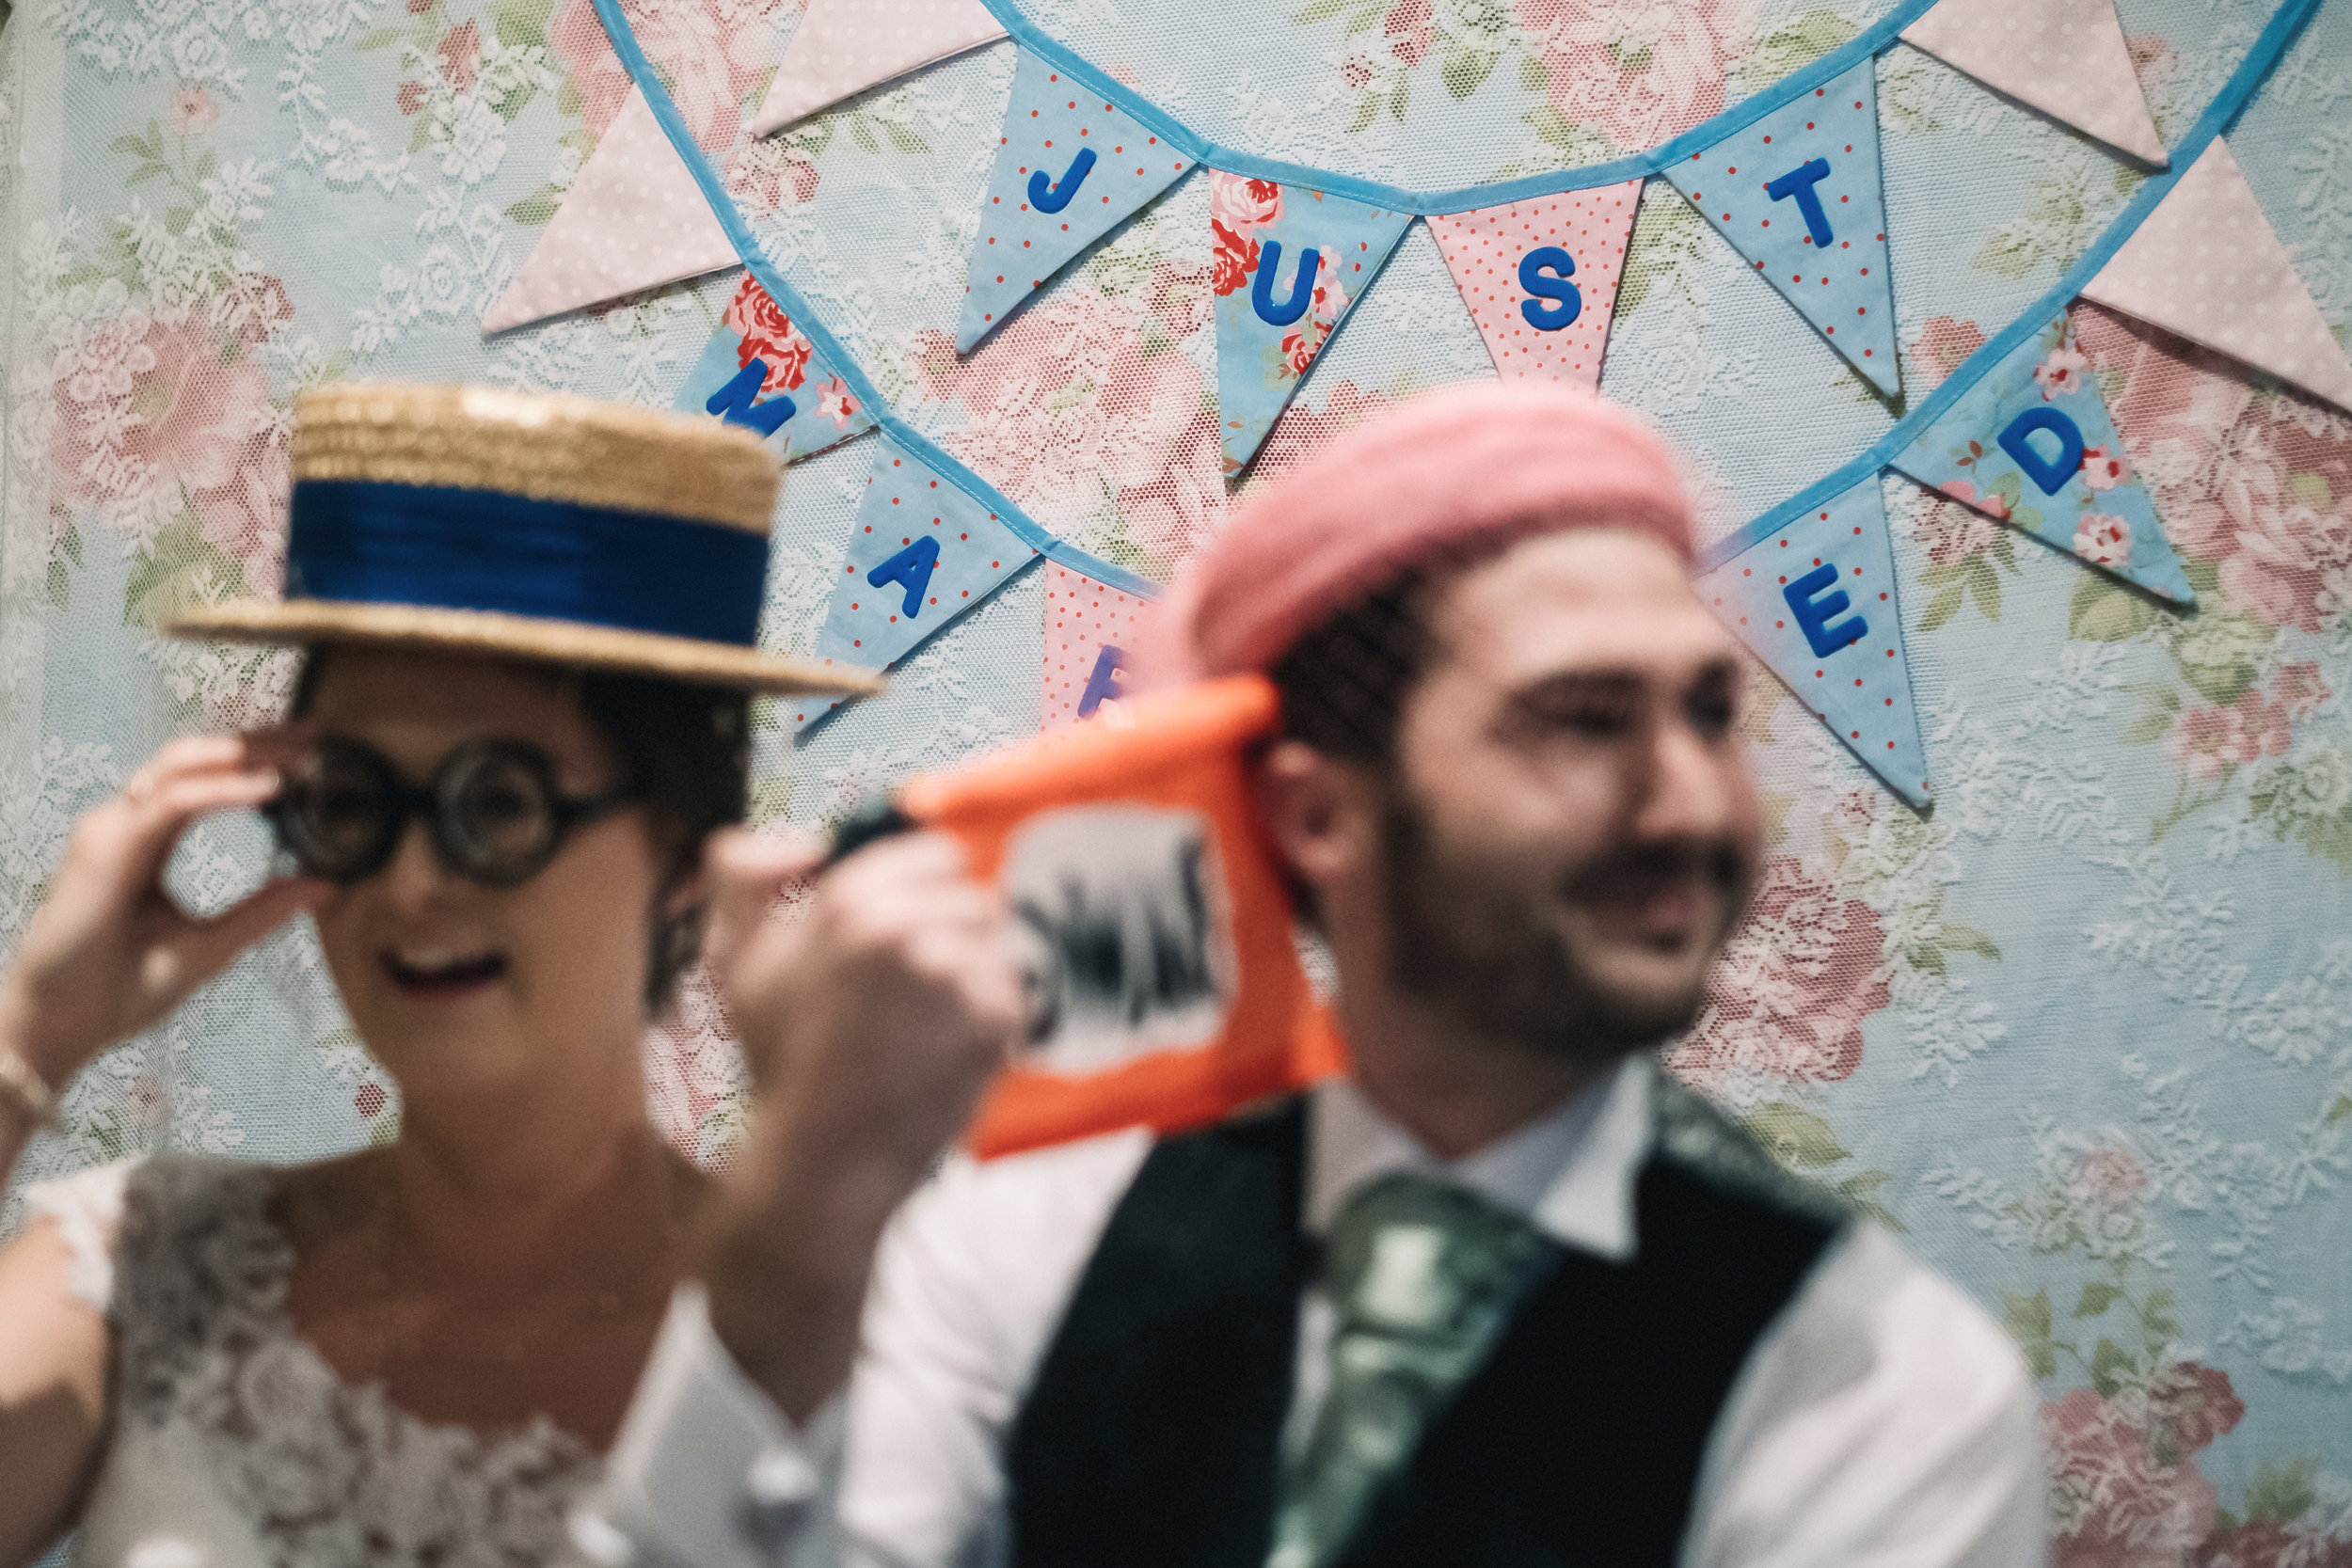 Bride + groom in photo booth